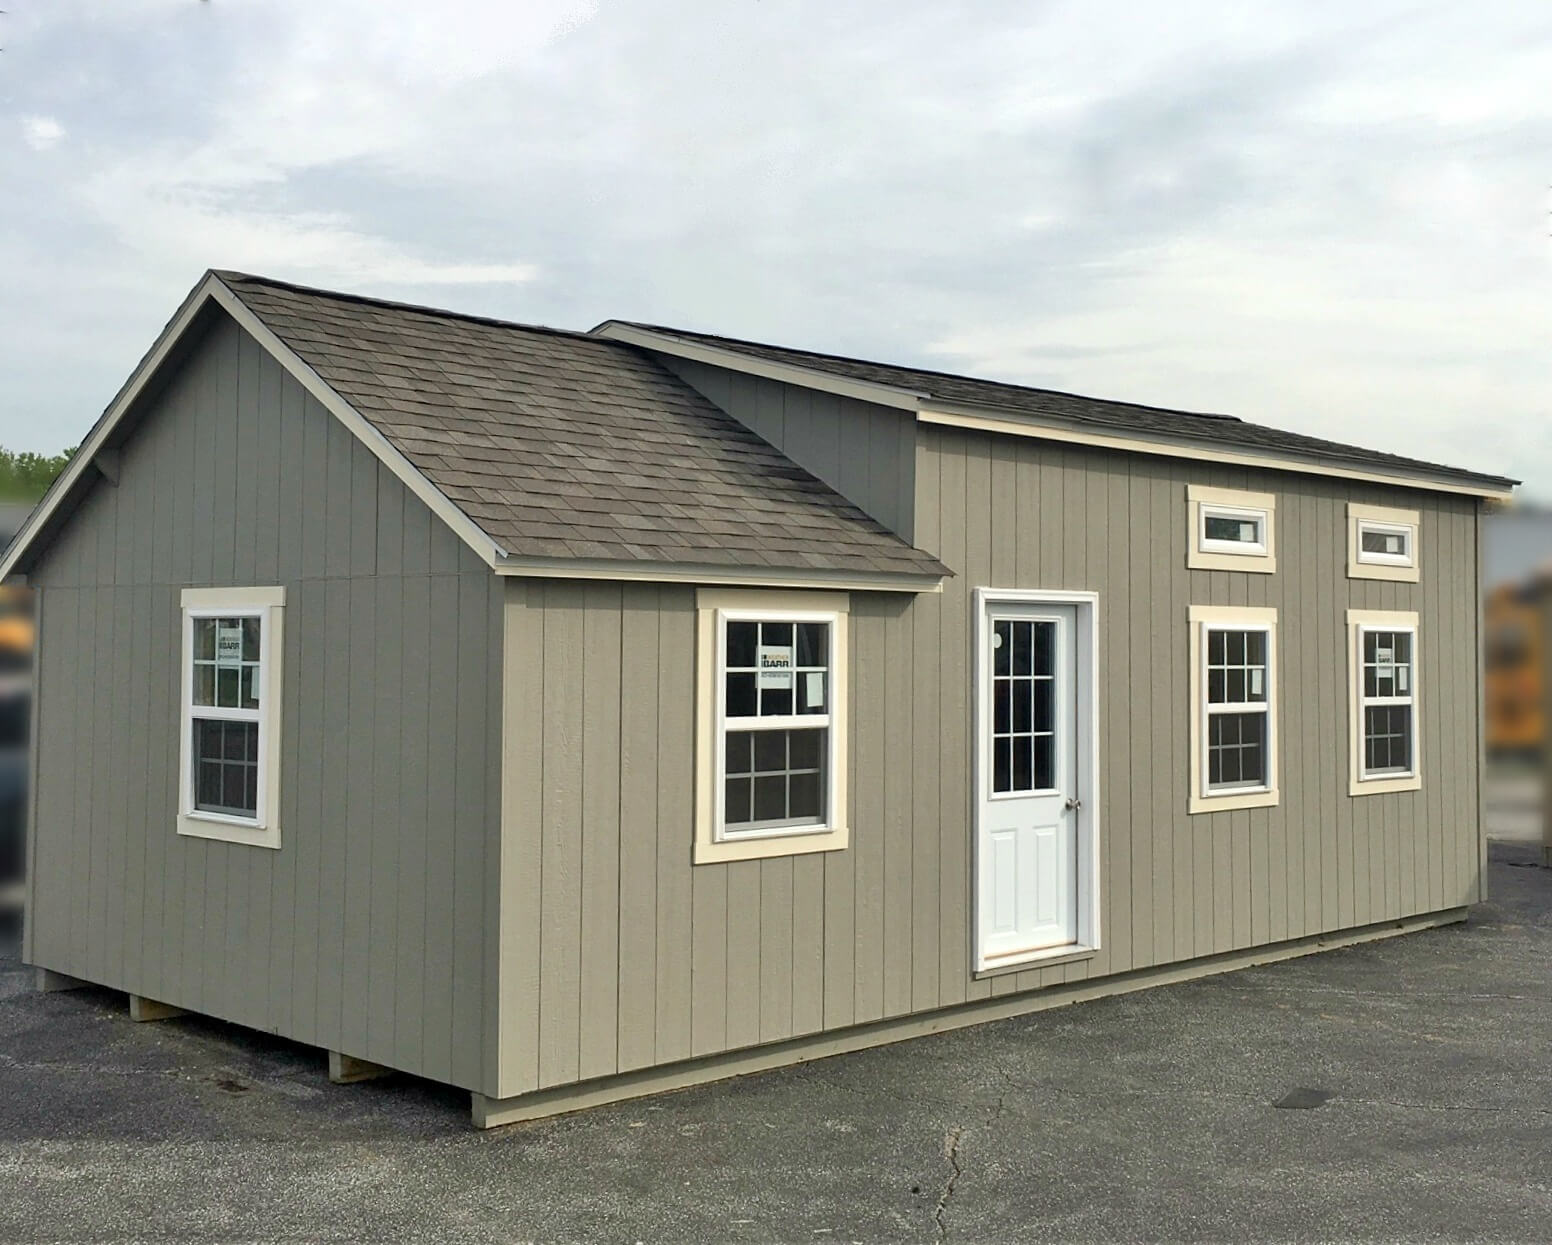 pre-fabricated Tiny Houses